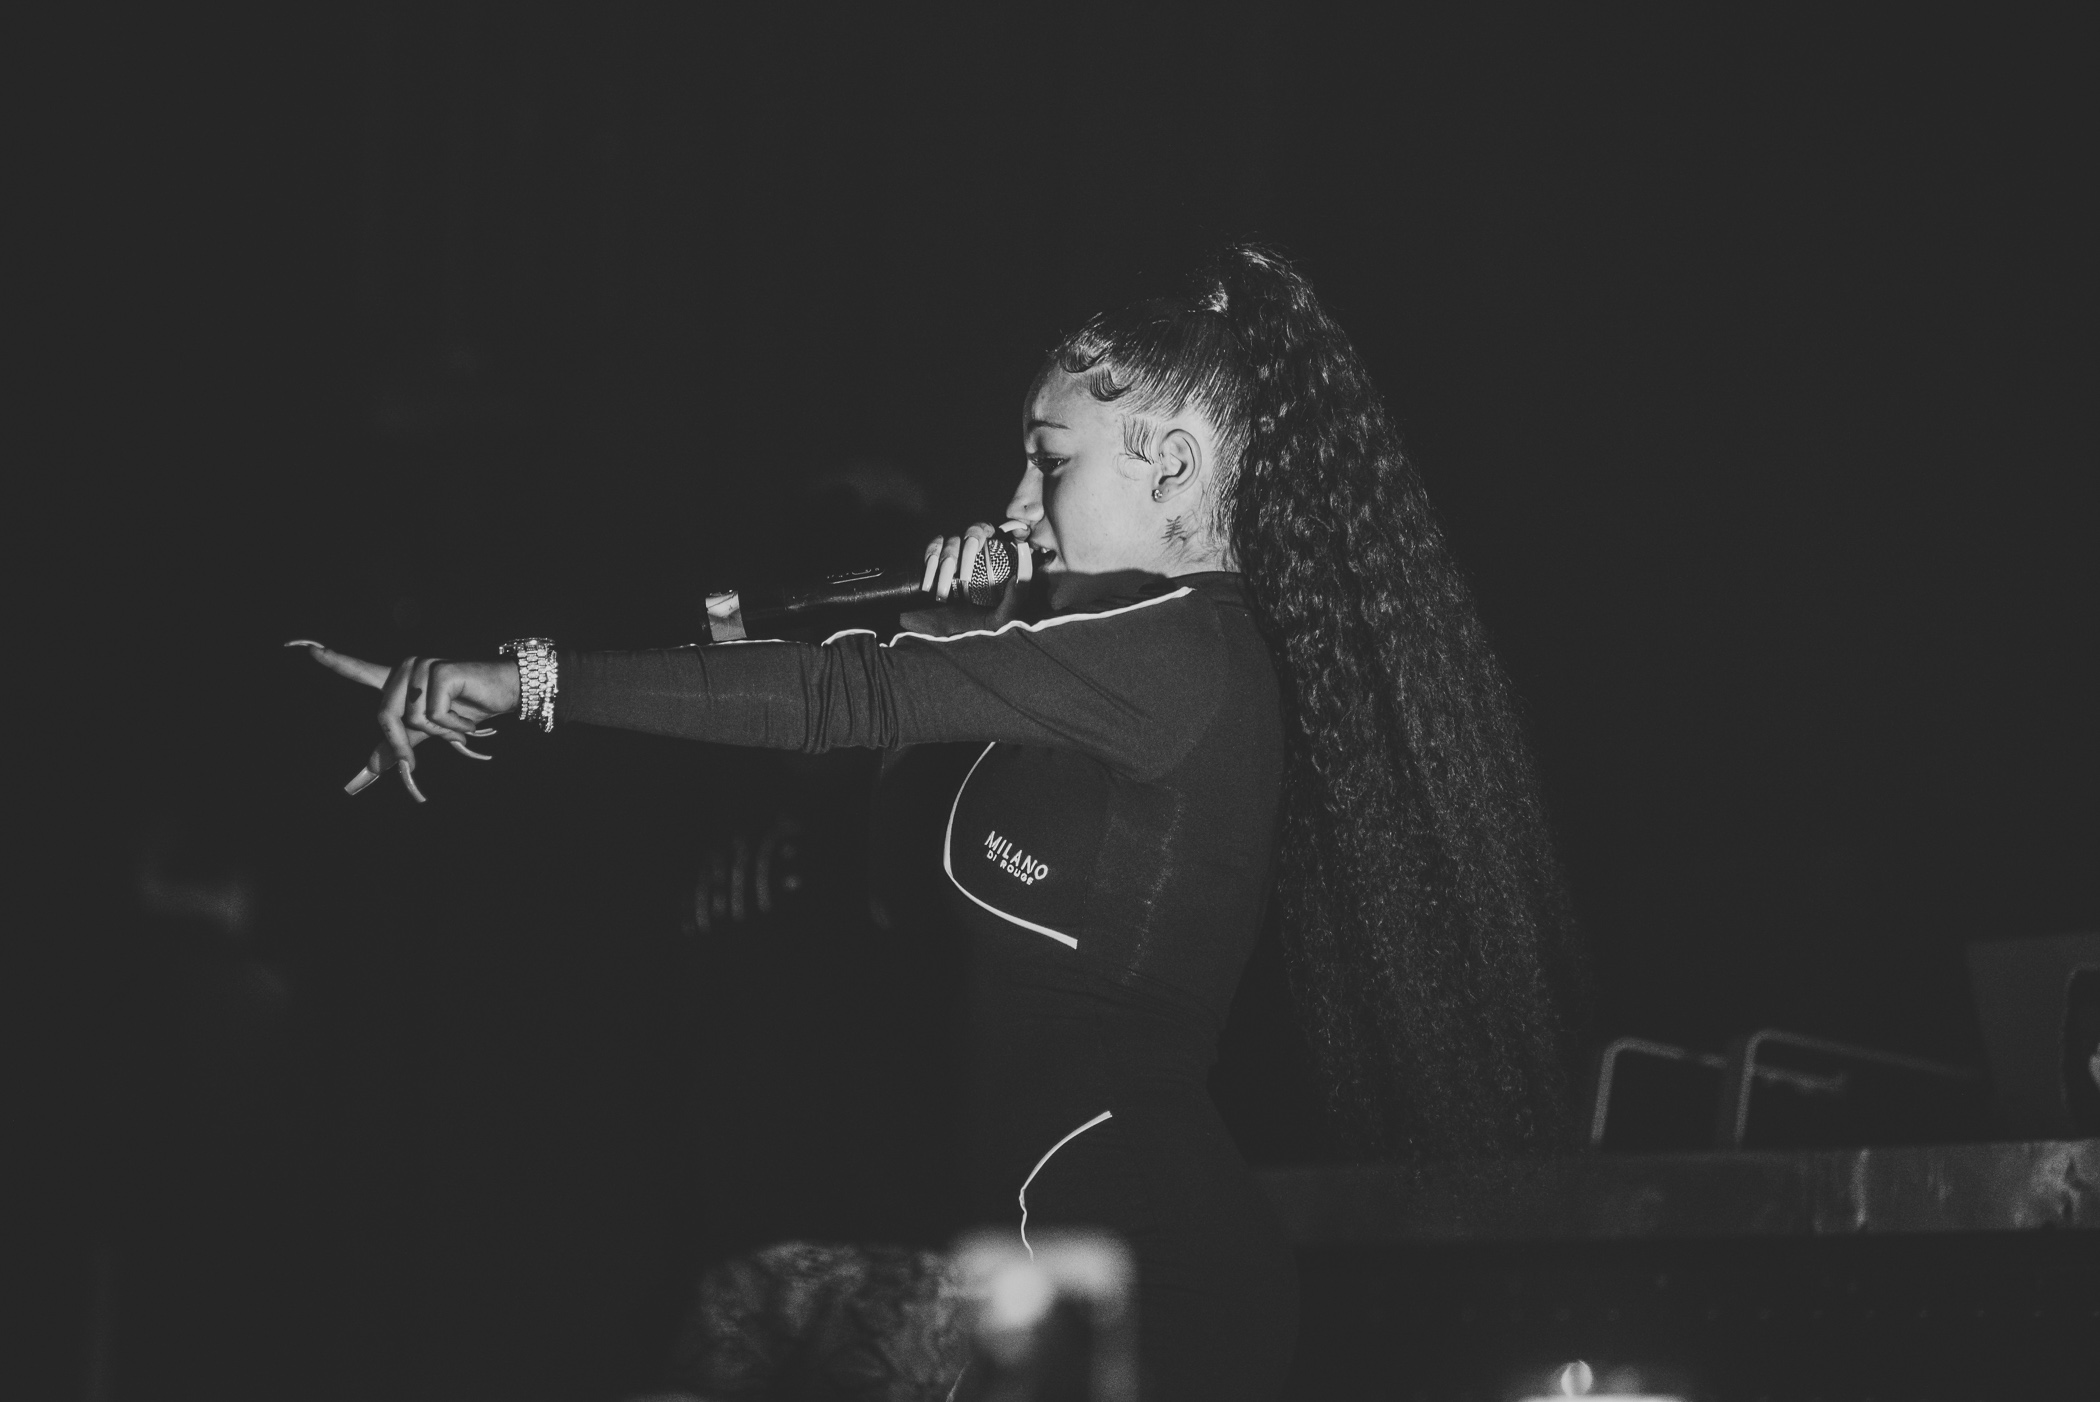 1_Bhad_Bhabie-VENUE-Timothy_Nguyen-20190510 (14 of 45).JPG